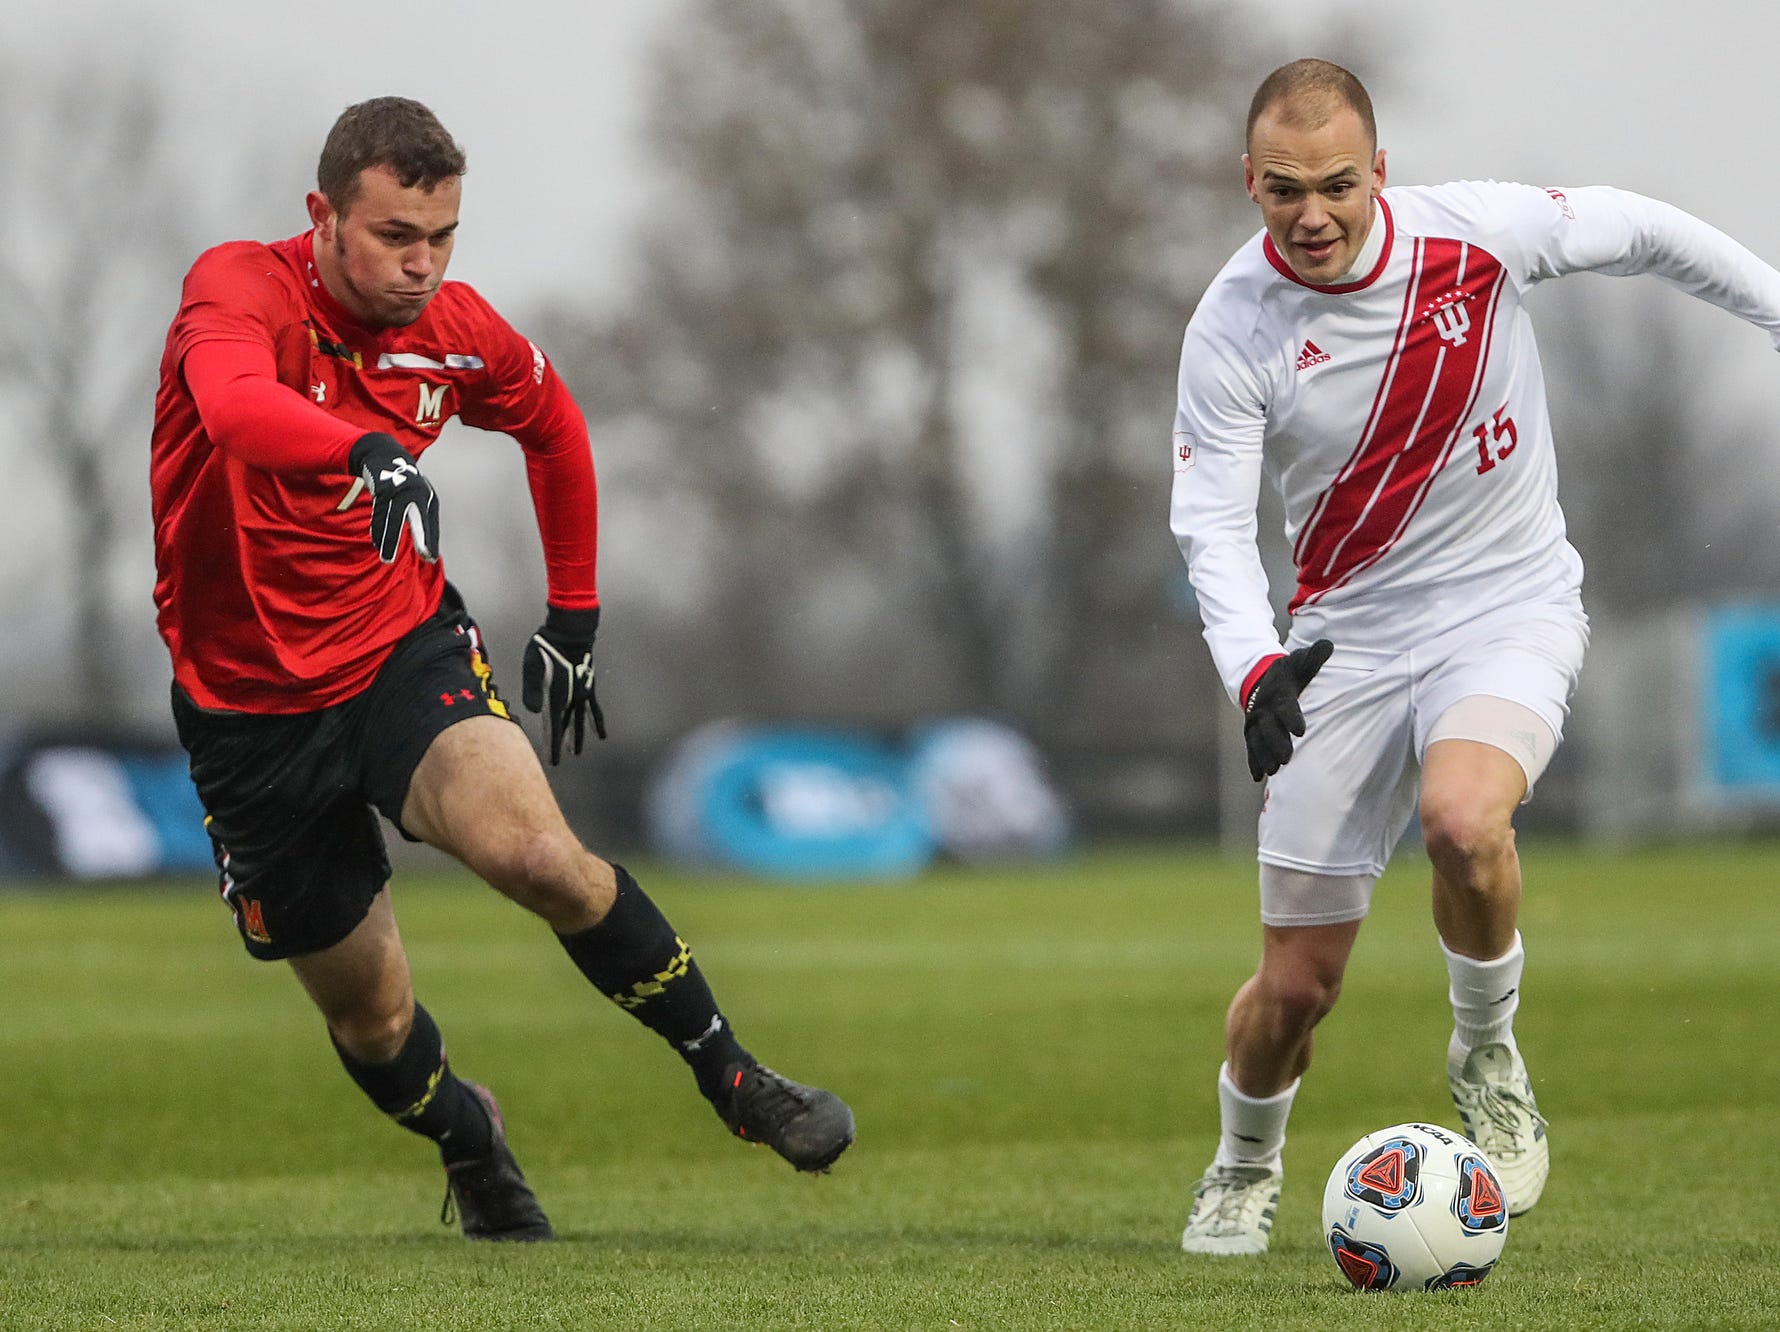 Maryland Terrapins forward Justin Gielen (7) guards Indiana Hoosiers Andrew Gutman (15) as he moves the ball during the first half of Big Ten semifinals at Grand Park in Westfield, Ind., Friday, Nov. 9, 2018. Indiana and Maryland tied 1-1, with the Hoosiers advancing in penalty kicks, 4-3.